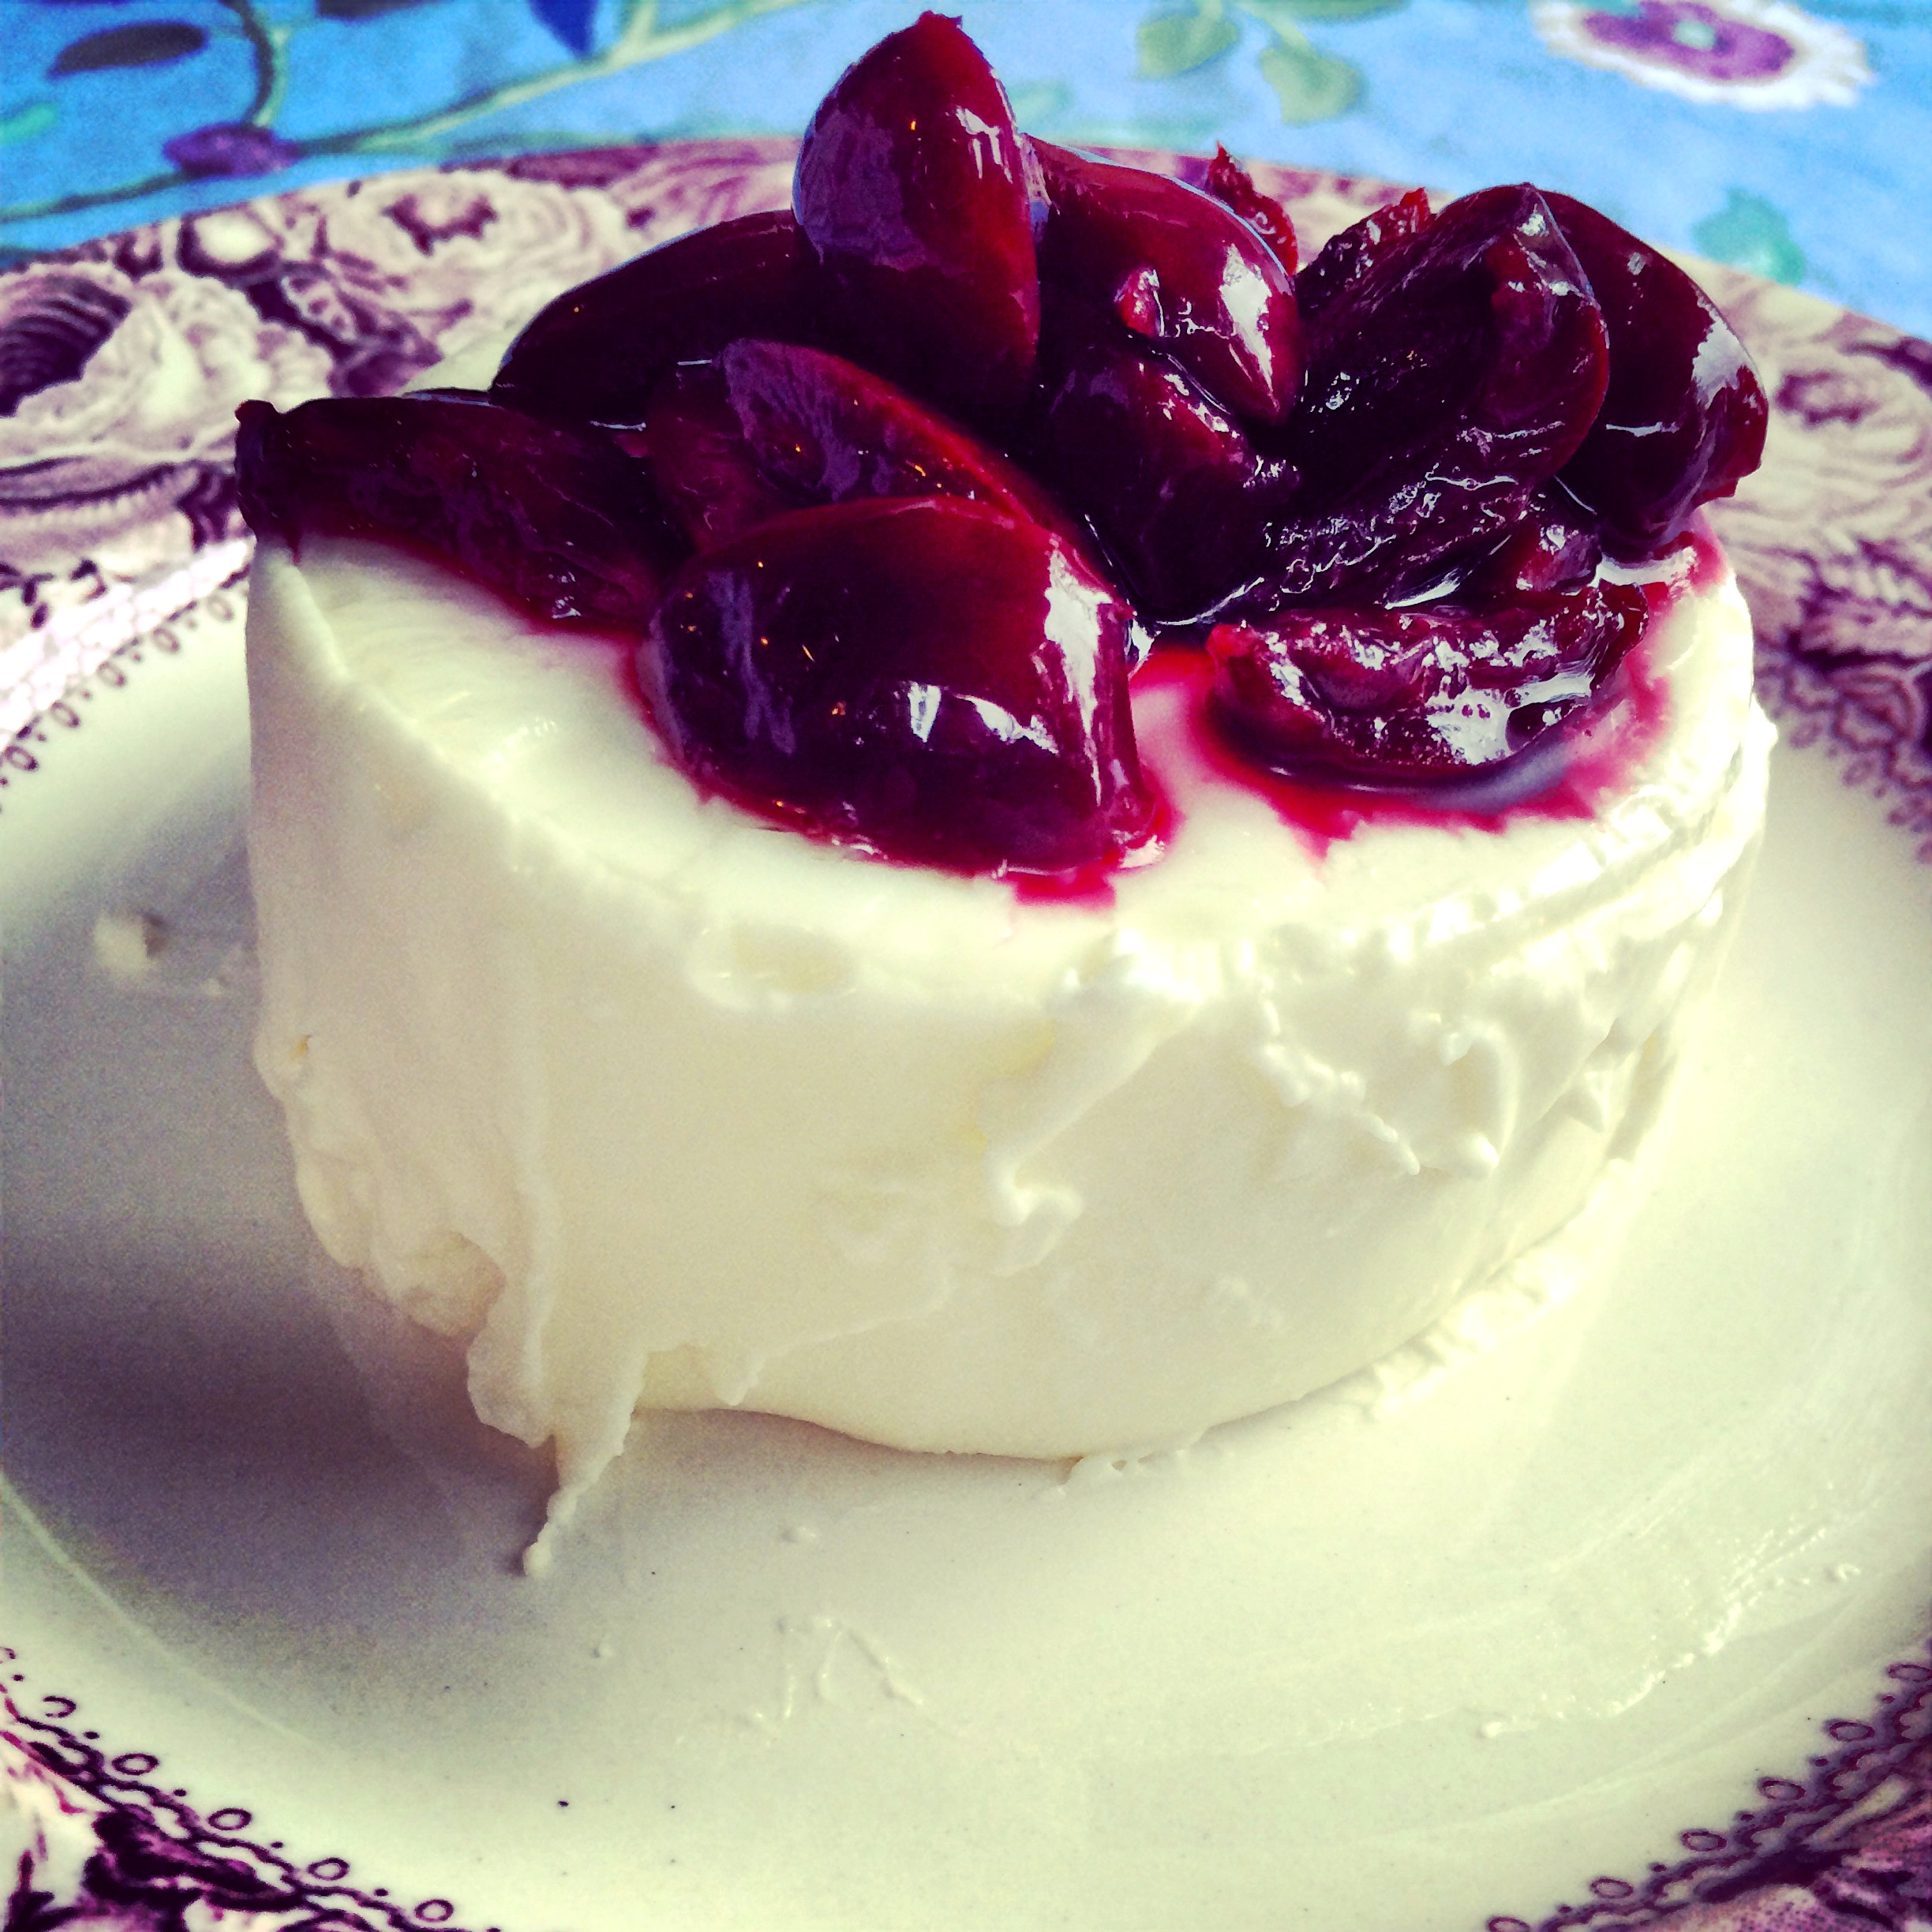 Buttermilk Panna Cotta with Roasted Cherries